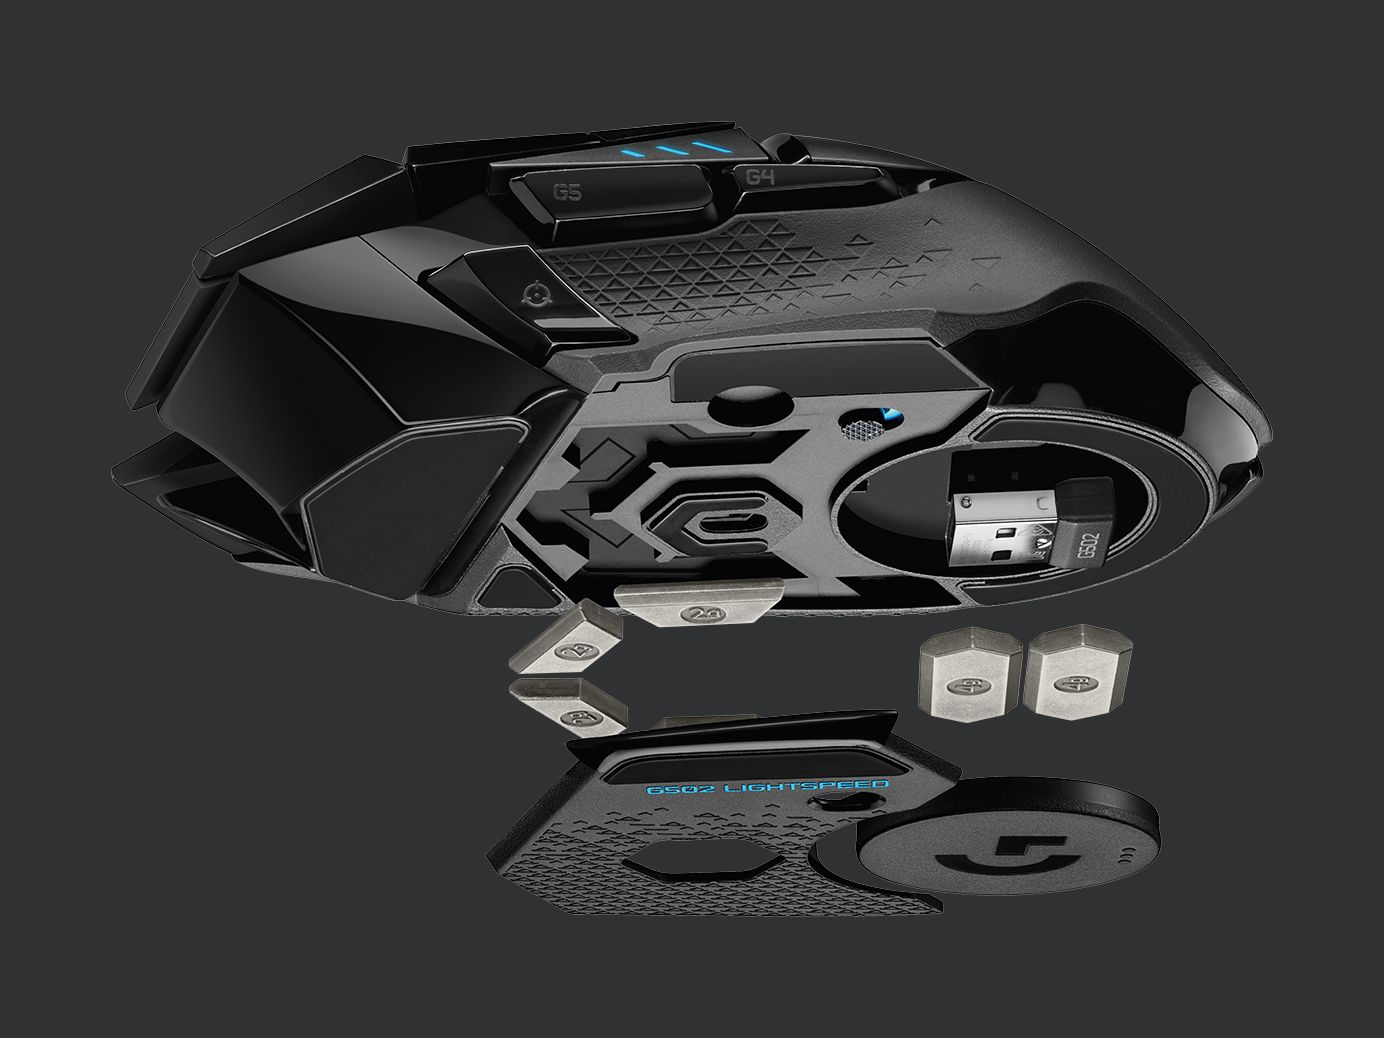 g502-lightspeed-gallery-2.png.imgw.1384.1038